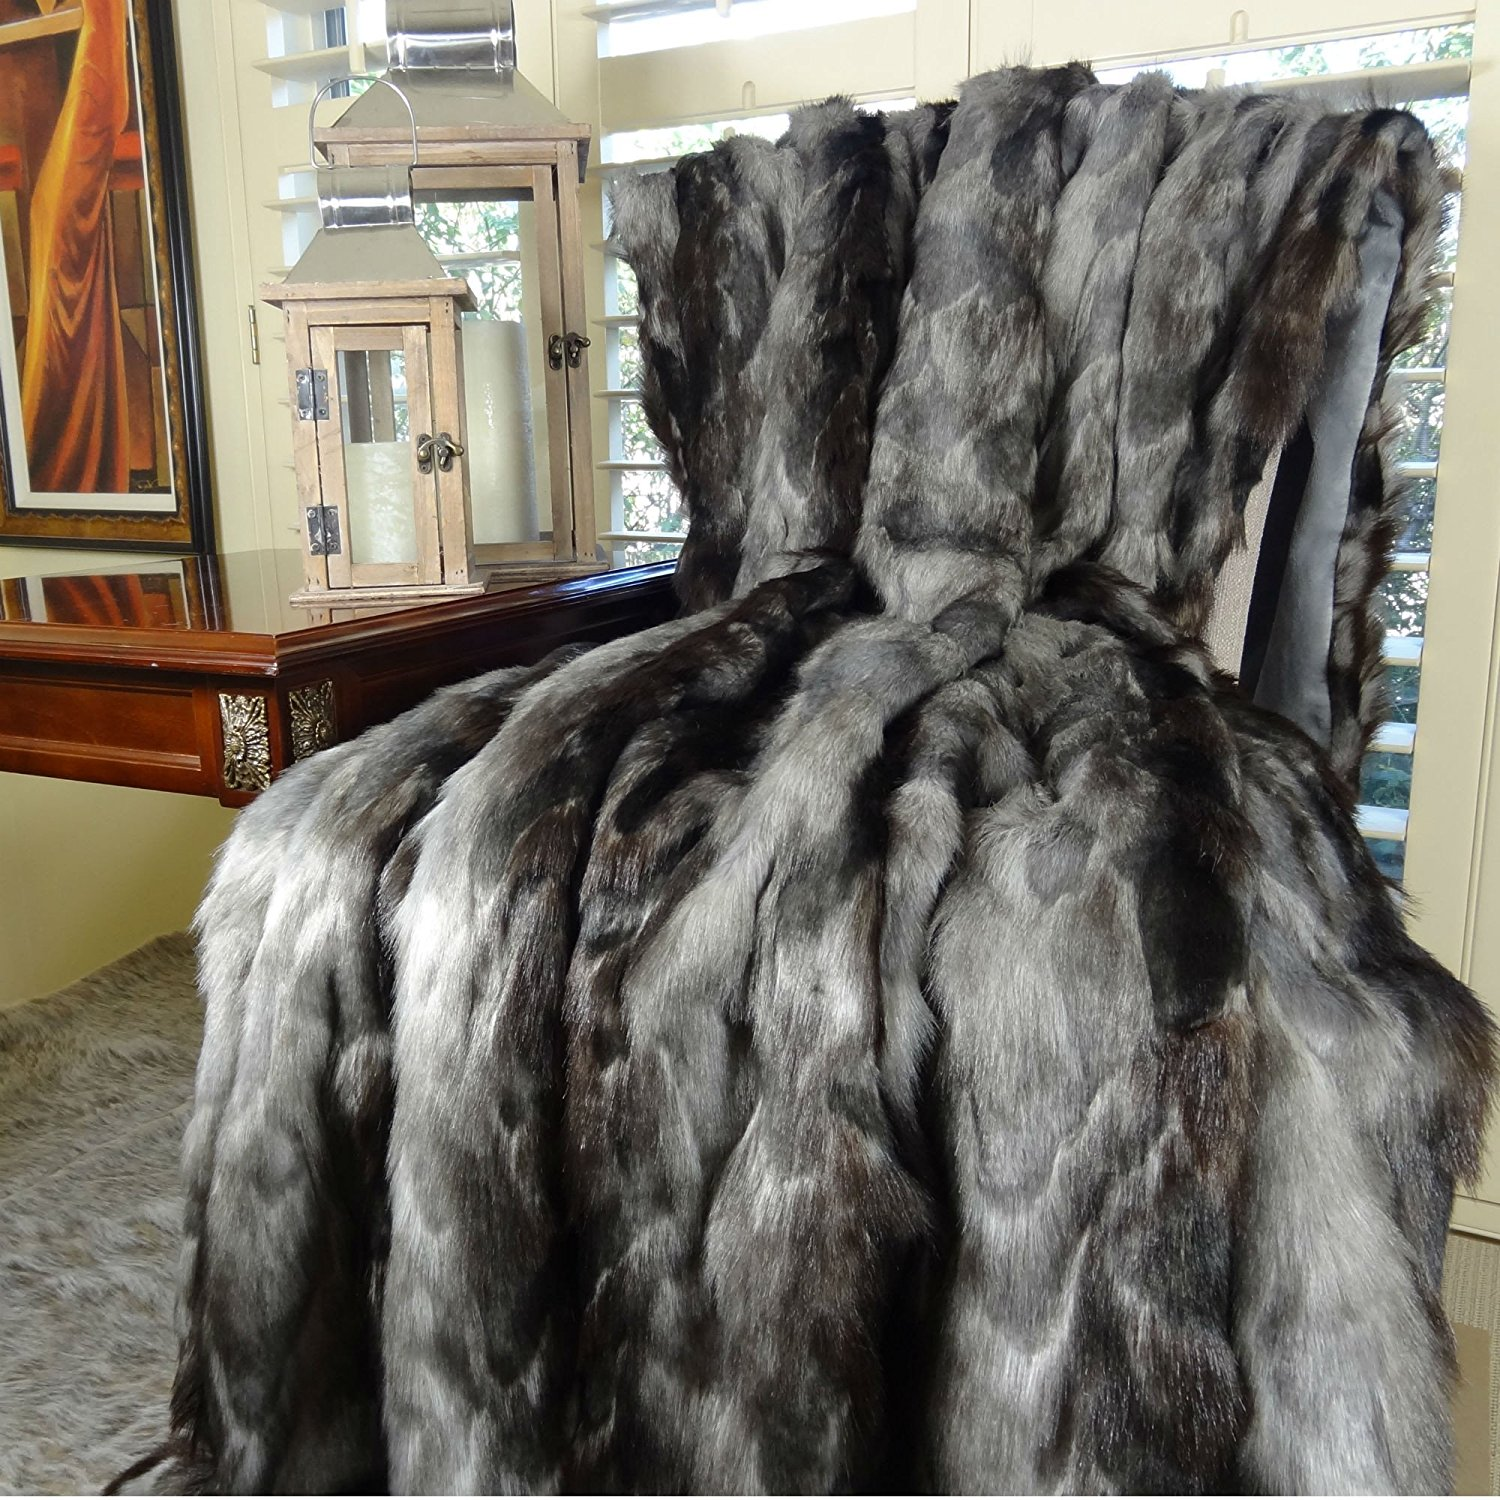 Thomas Collection Exotic Gray Fox Faux Fur Throw Blanket & Bedspread, Gray Charcoal Black Fox Fur, Gray Fox Throw Blanket, Luxury Soft Fox Faux Fur, Made in America, 16439